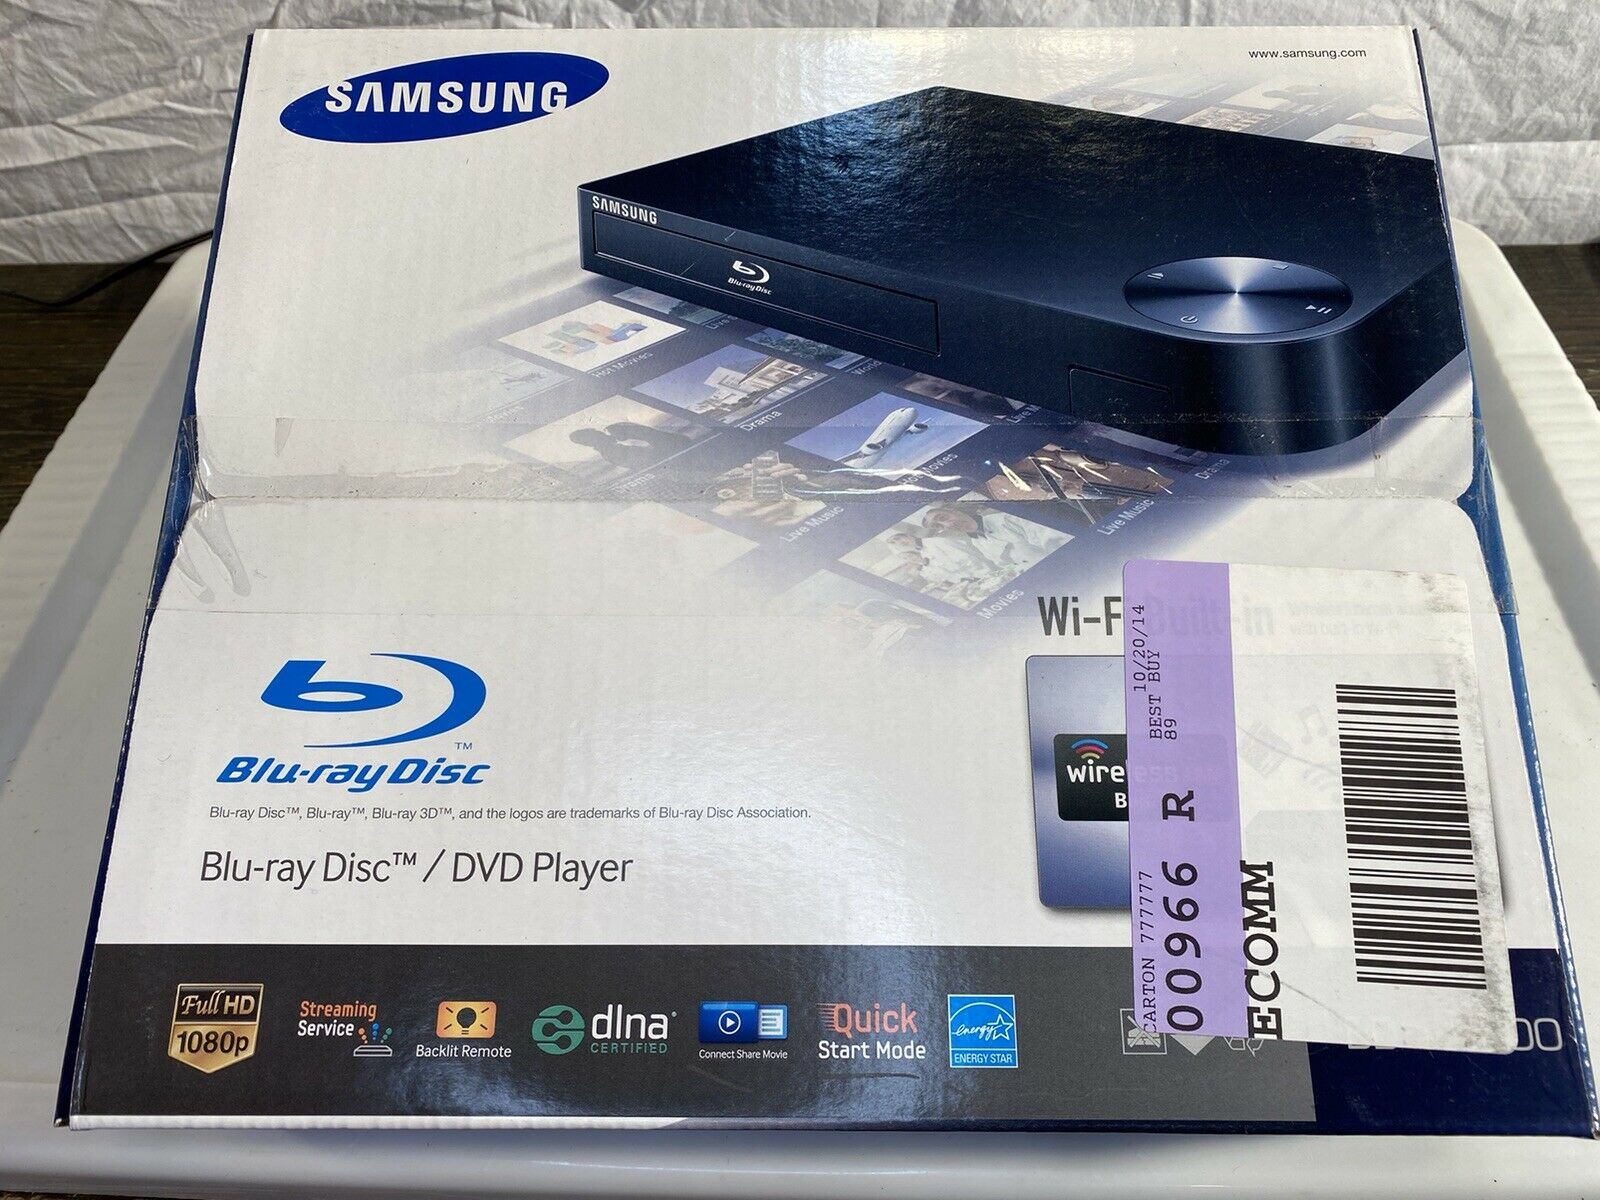 SAMSUNG Blu-Ray Disc/DVD Player +Remote Streaming Apps BD-F5700 Full HD 1080P 1080p apps full player samsung streaming